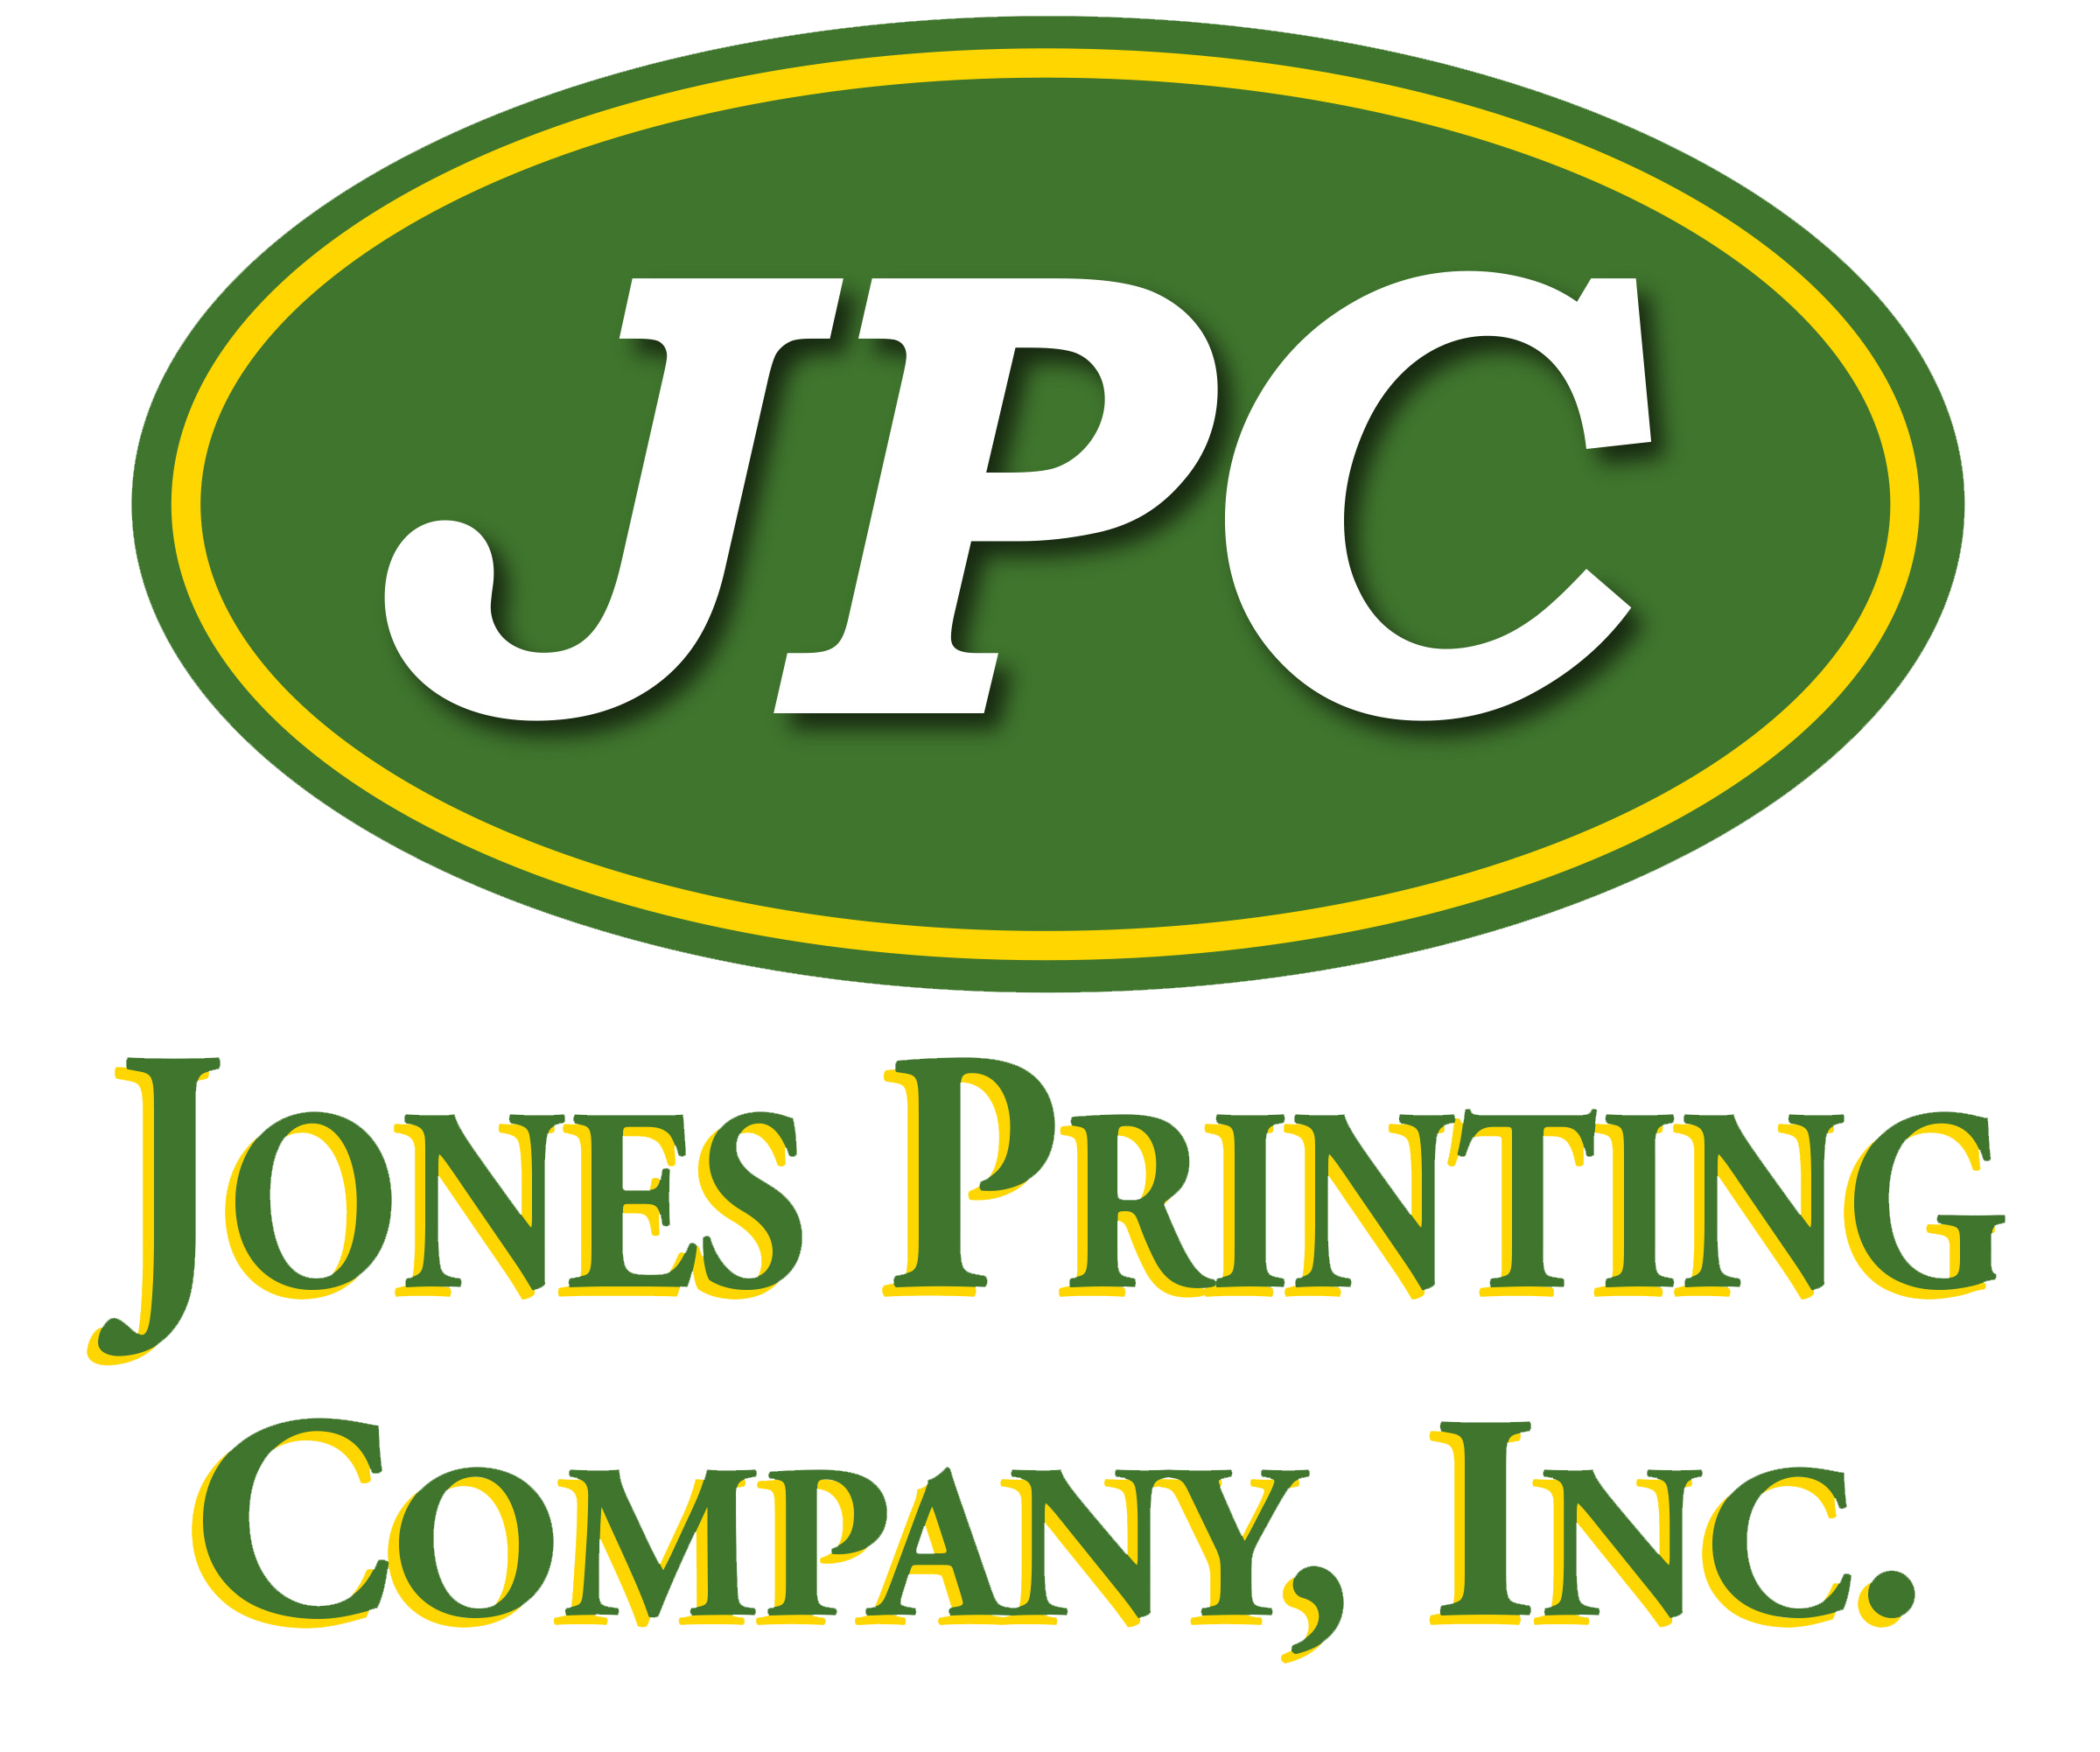 Jones Printing Co Inc